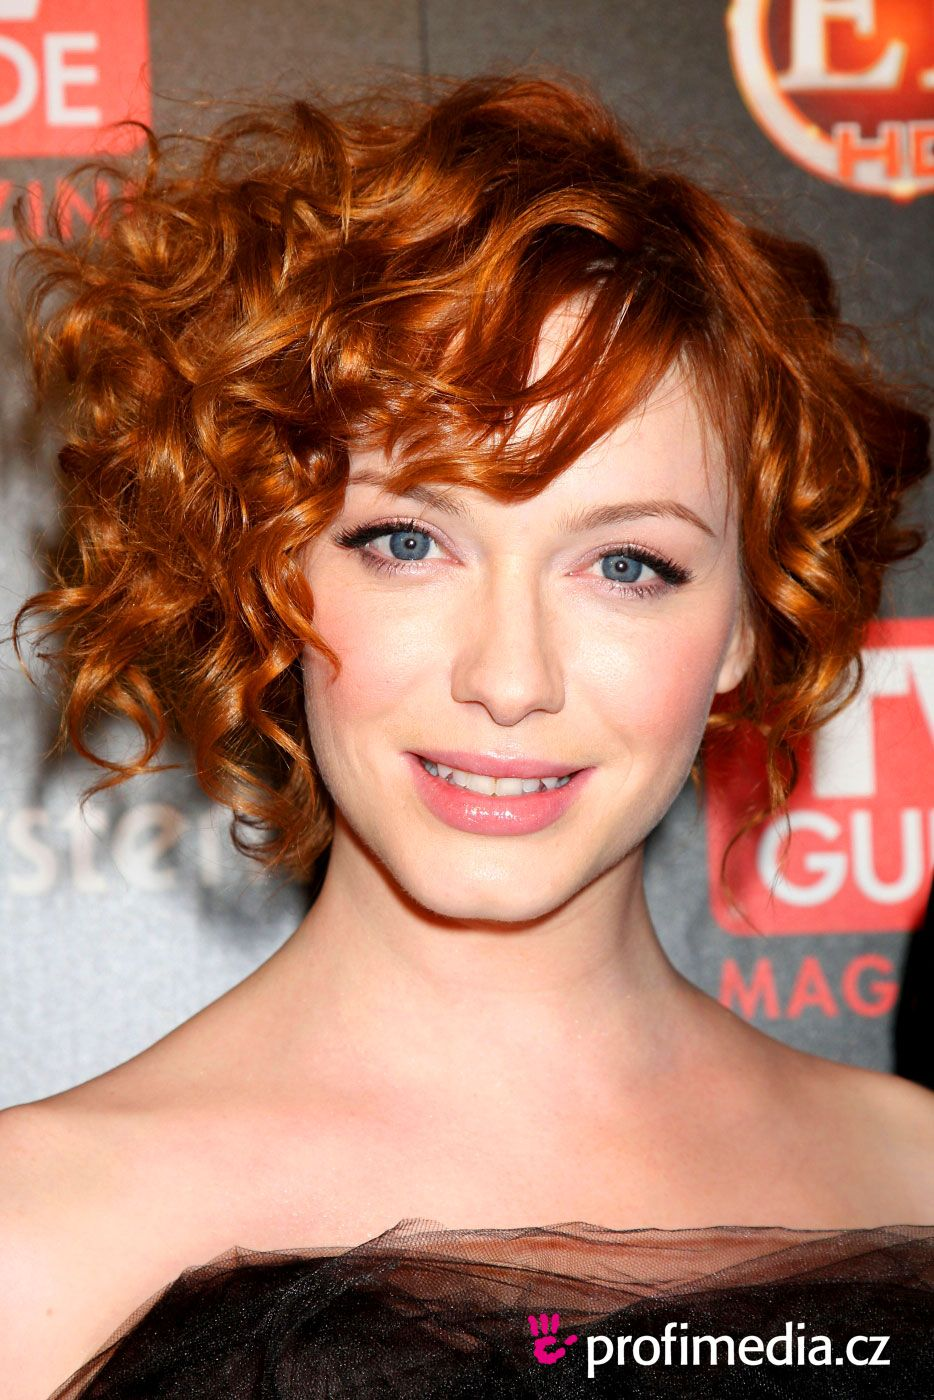 Christina hendricks i love her hair here christina